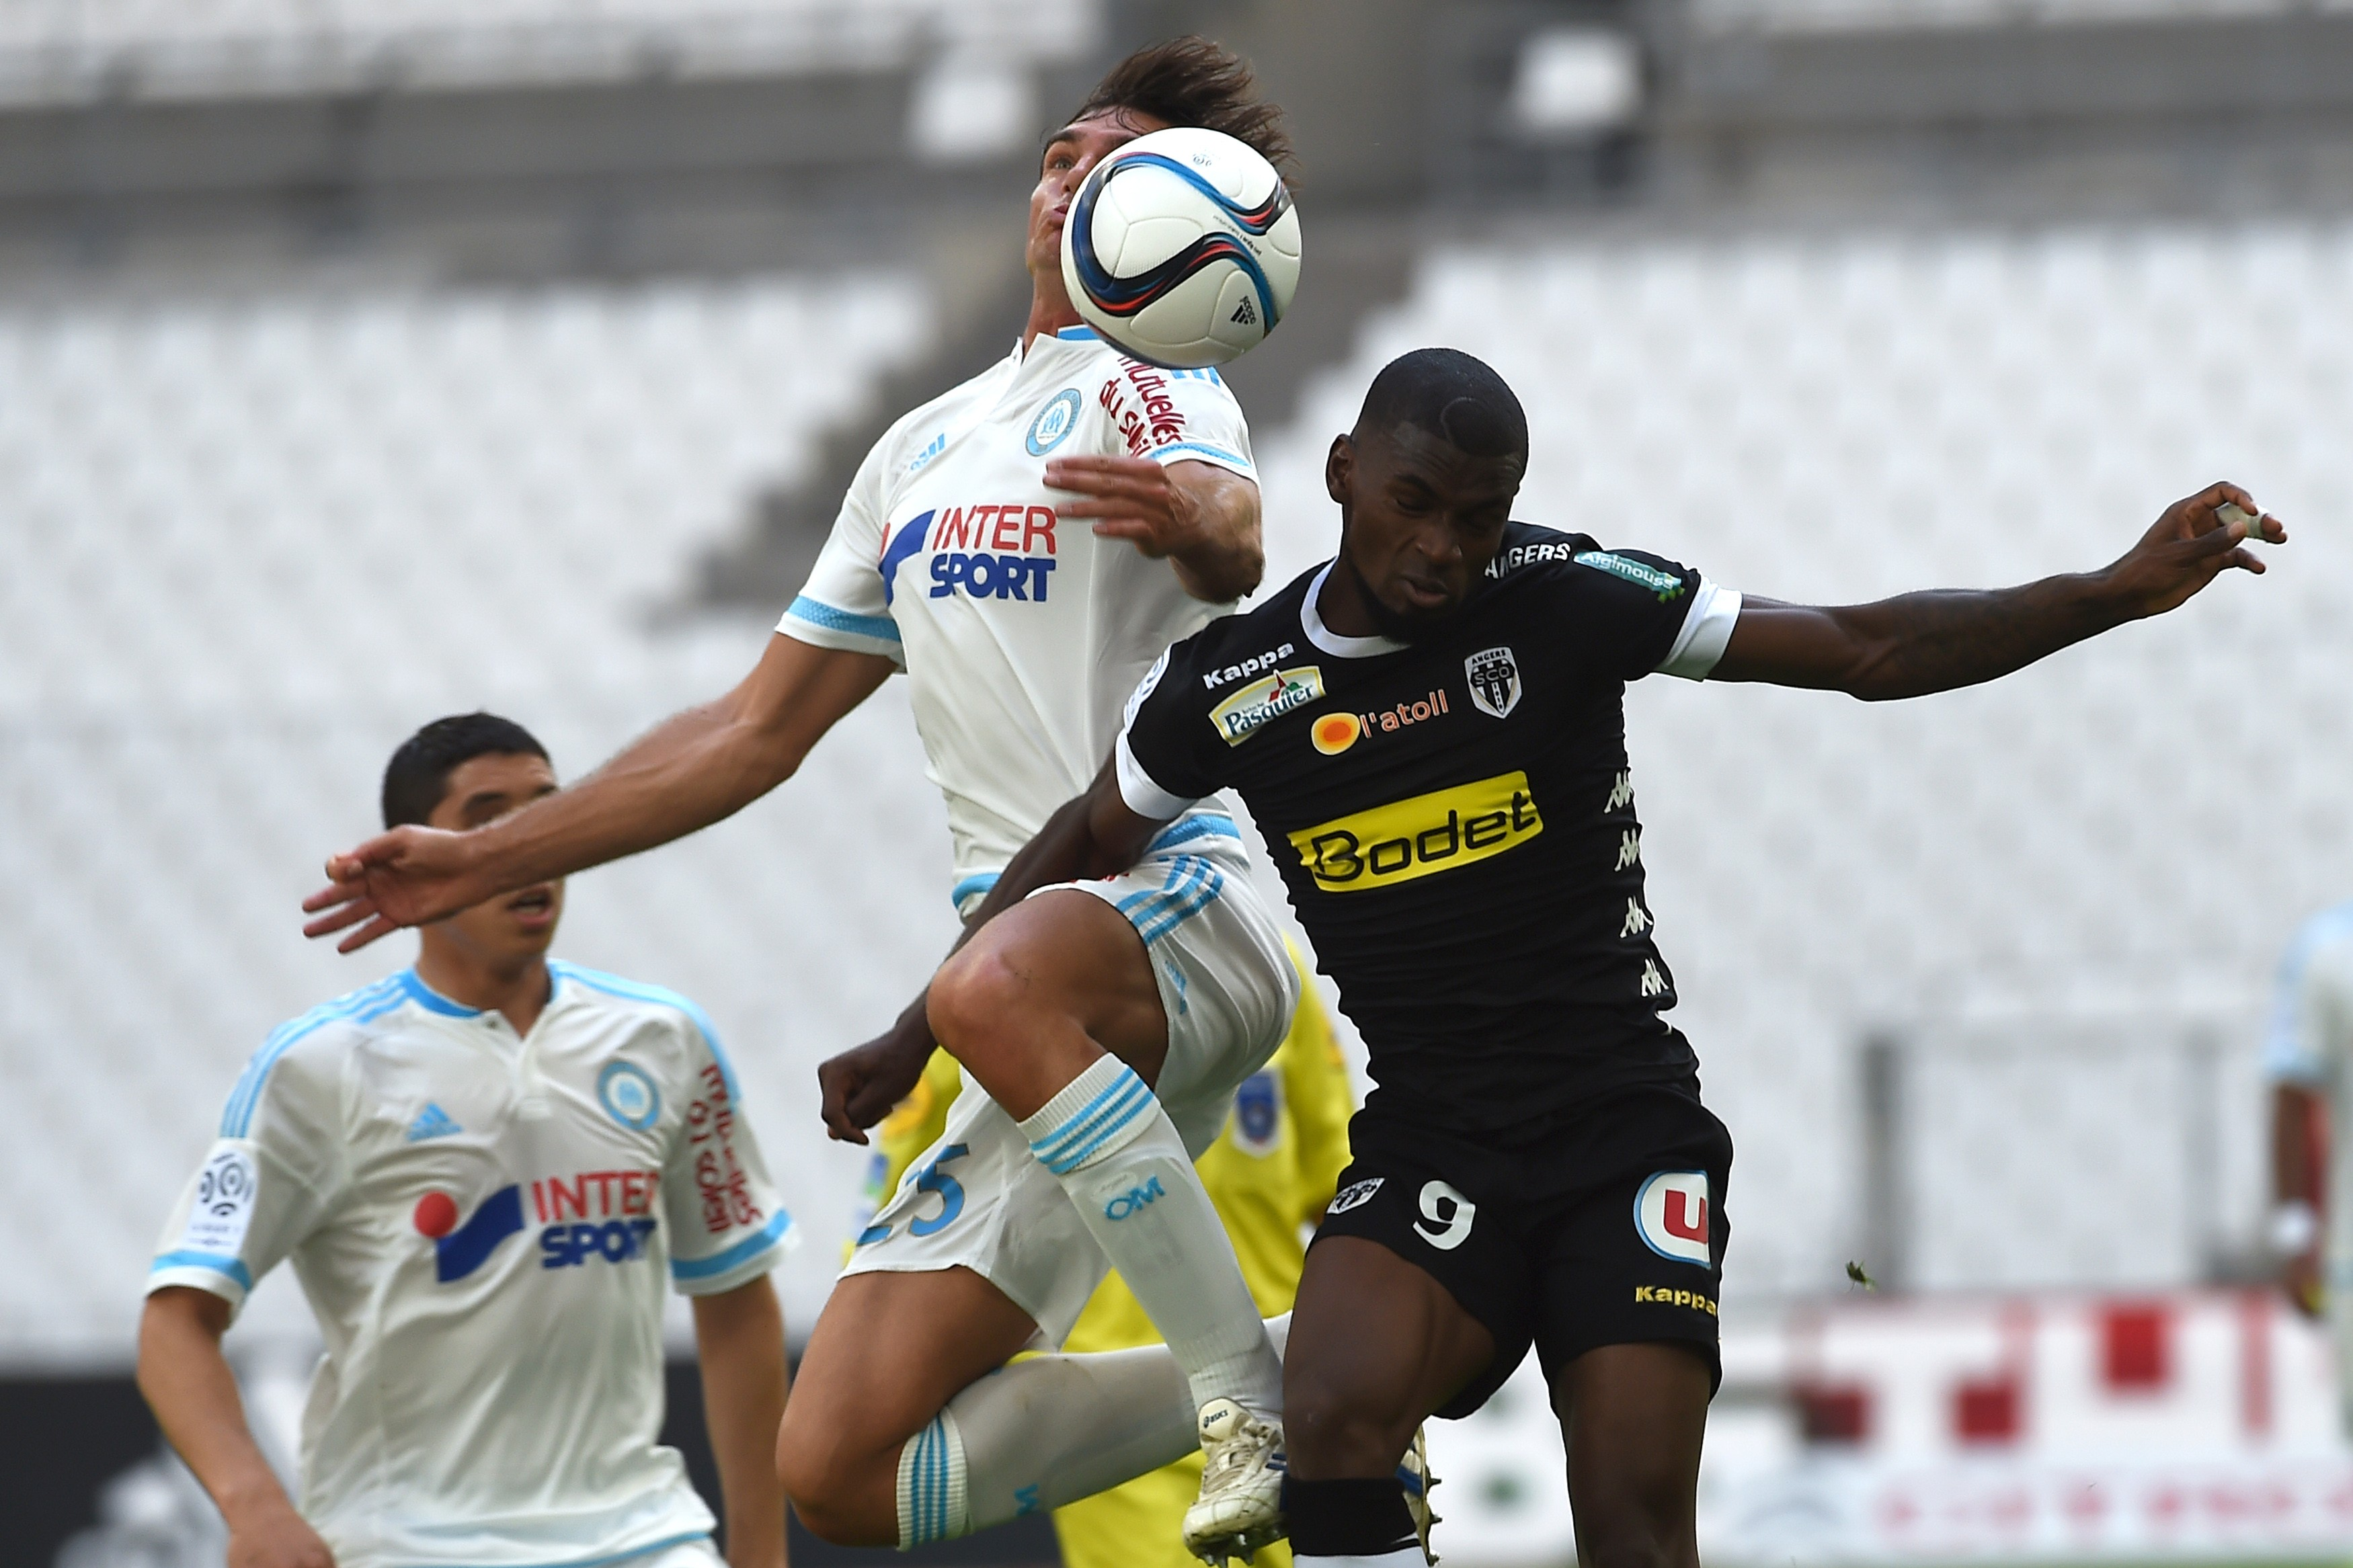 Angers – Marseille